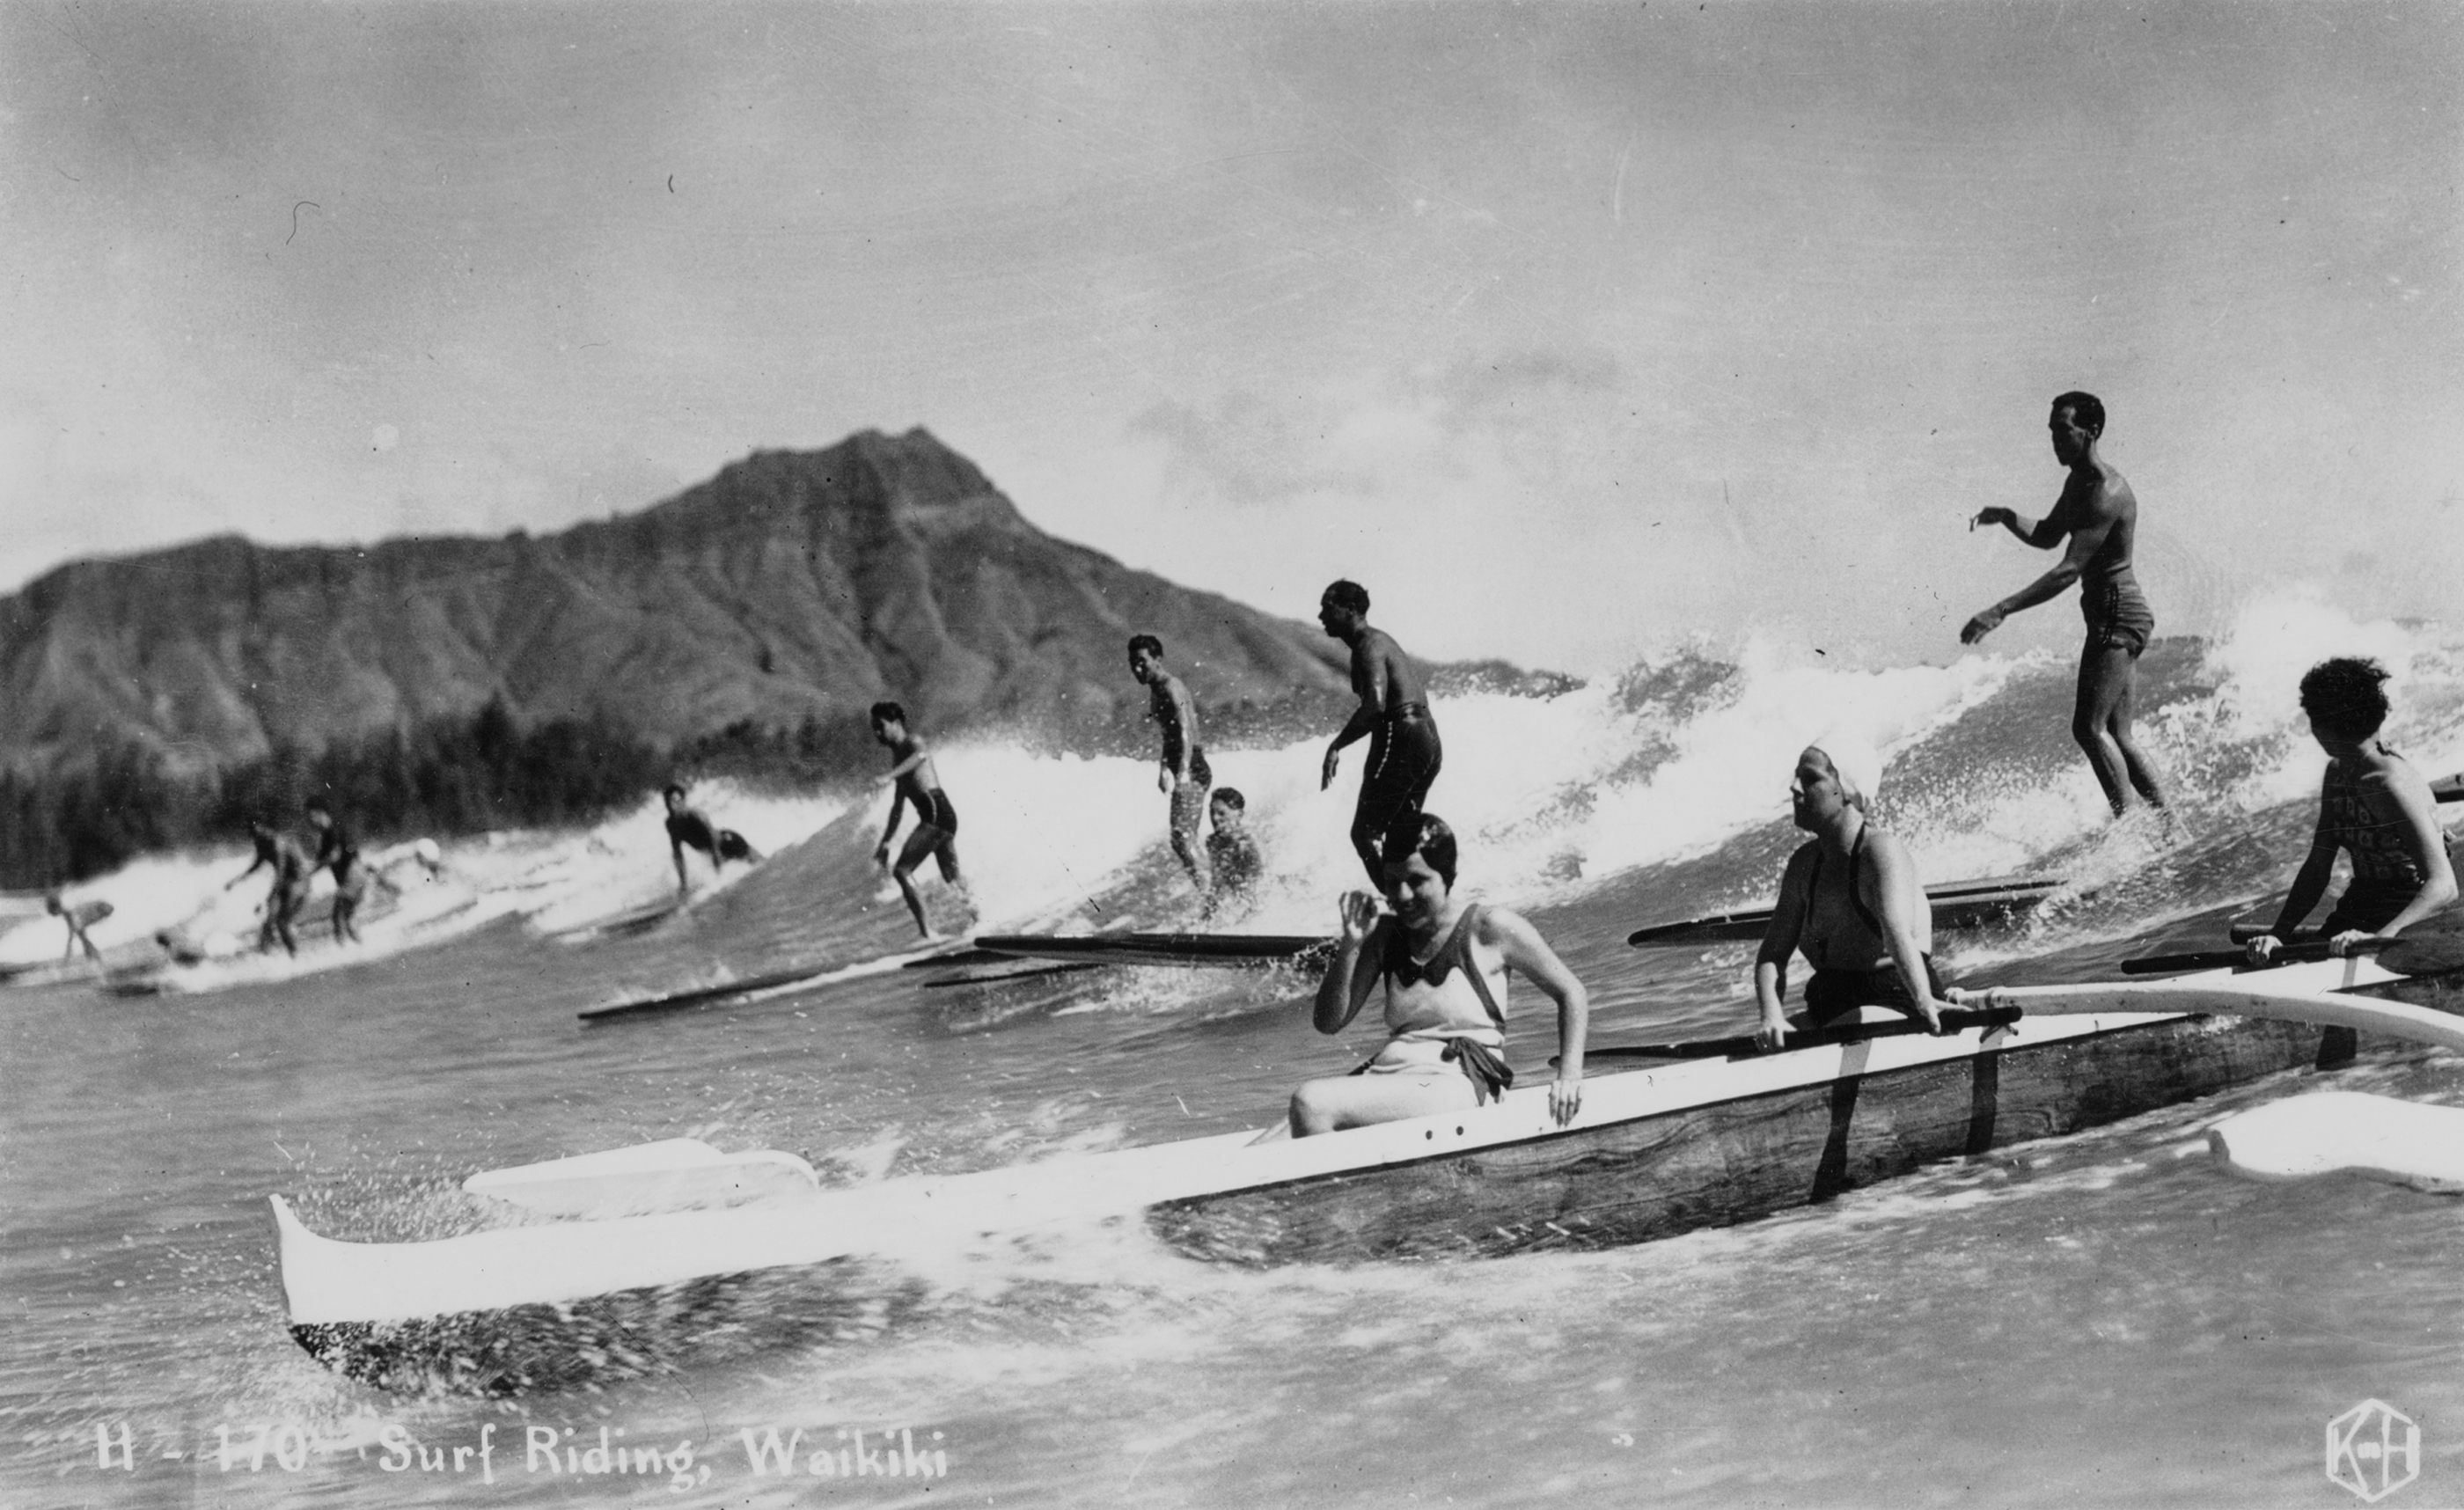 [Pākā waʻa] Postcard showing canoe surfing with Diamond Head in background; Oʻahu, Hawaiʻi, ca. 1935. Photo by Kodak Hawaiʻi, Bishop Museum Archives. Used with permission.